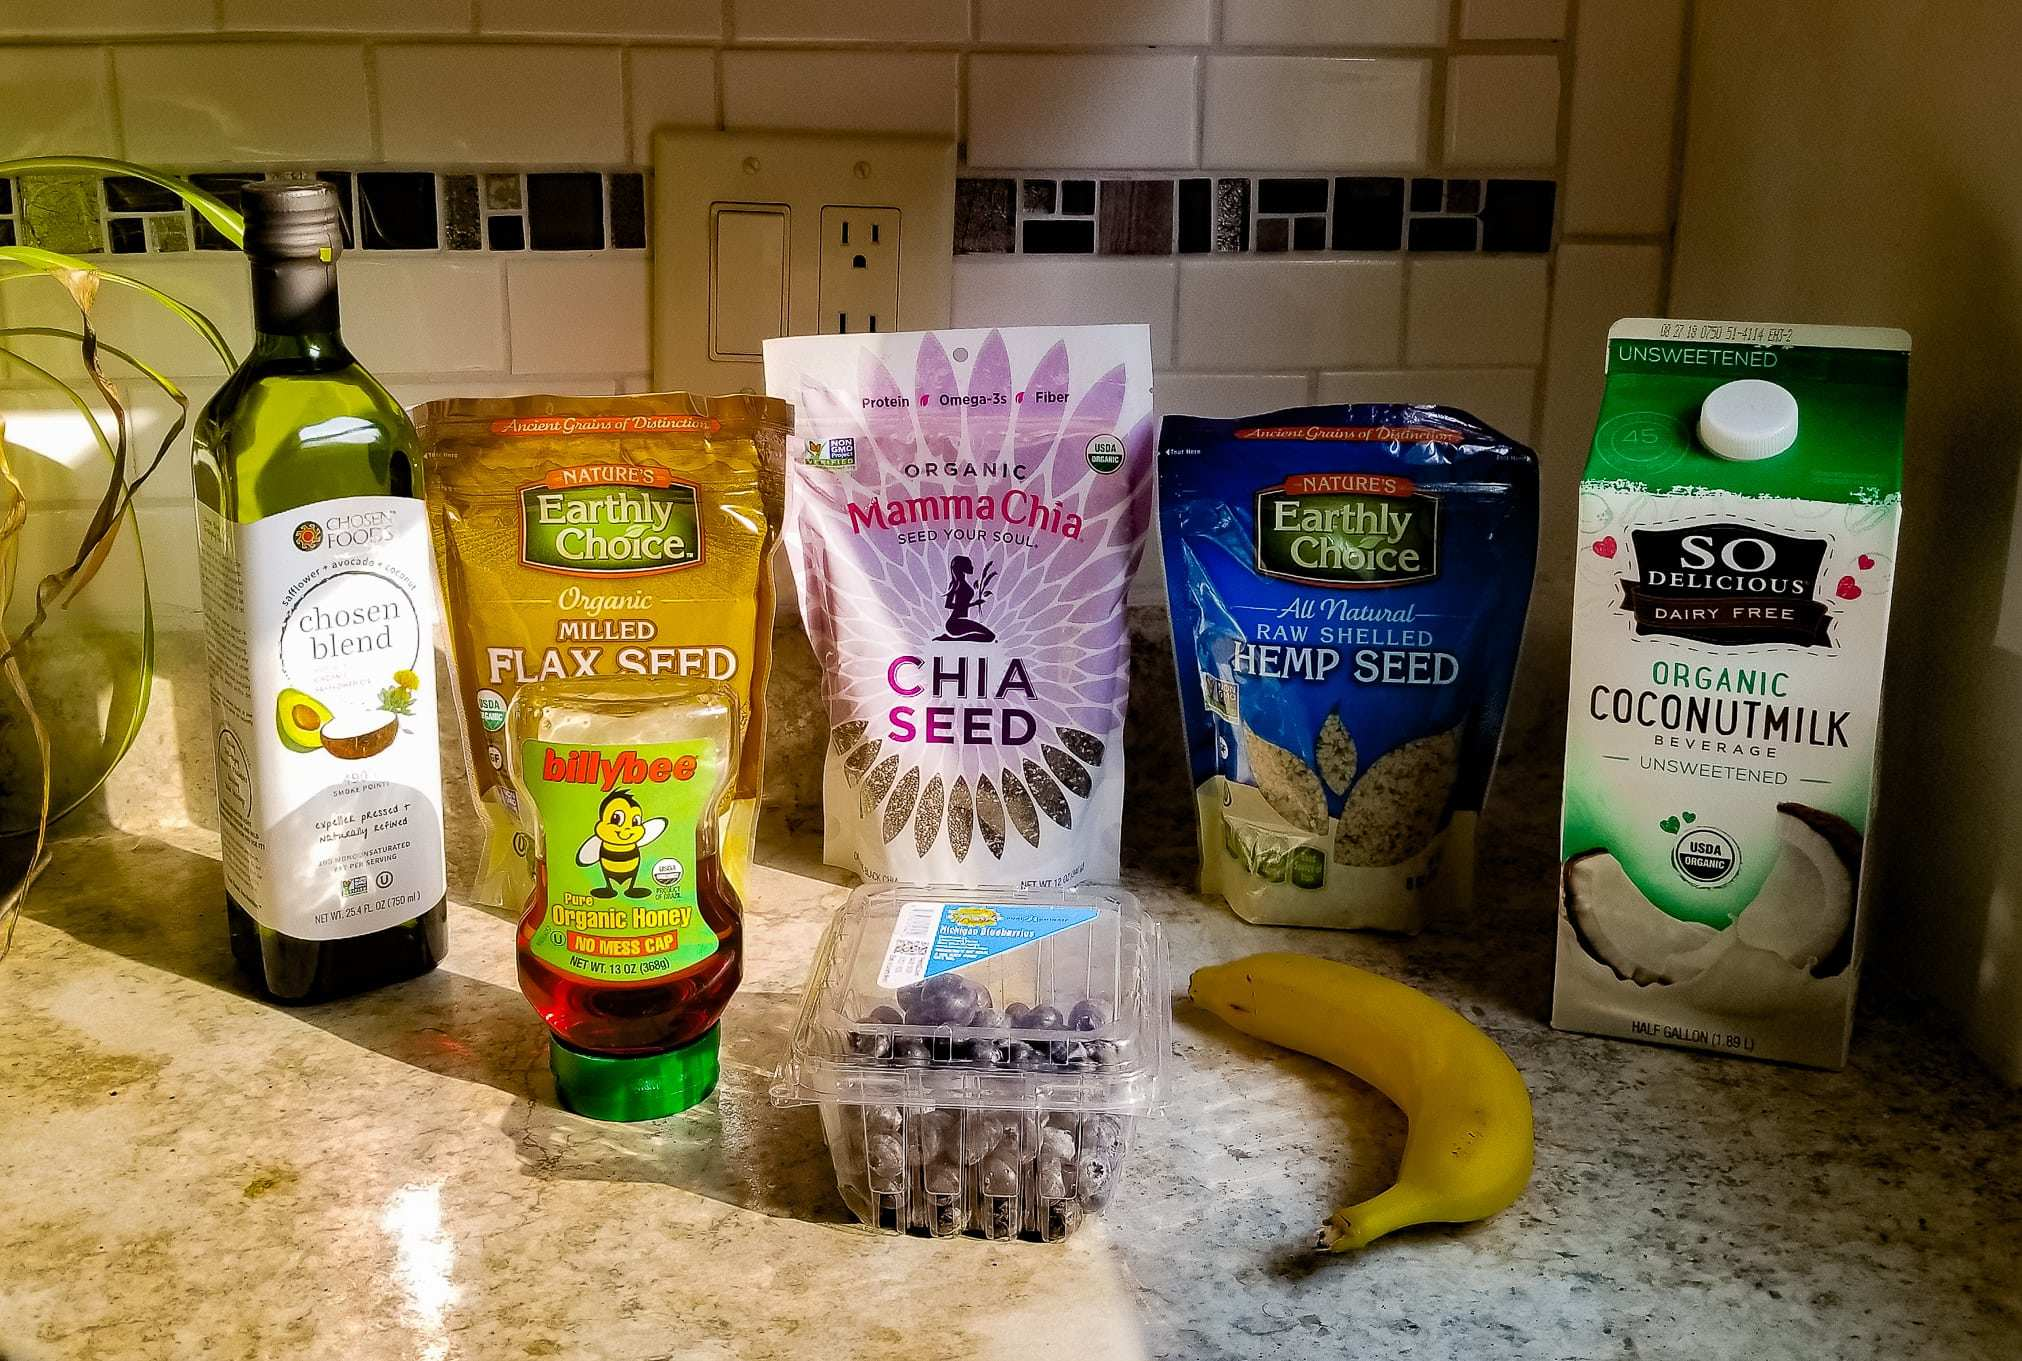 Smoothie ingredients on a counter, including hemp seeds. The keto diet focuses on low carbohydrate and high fat consumption, making hemp for keto a great option to ensure you get plenty of vital amino acids.